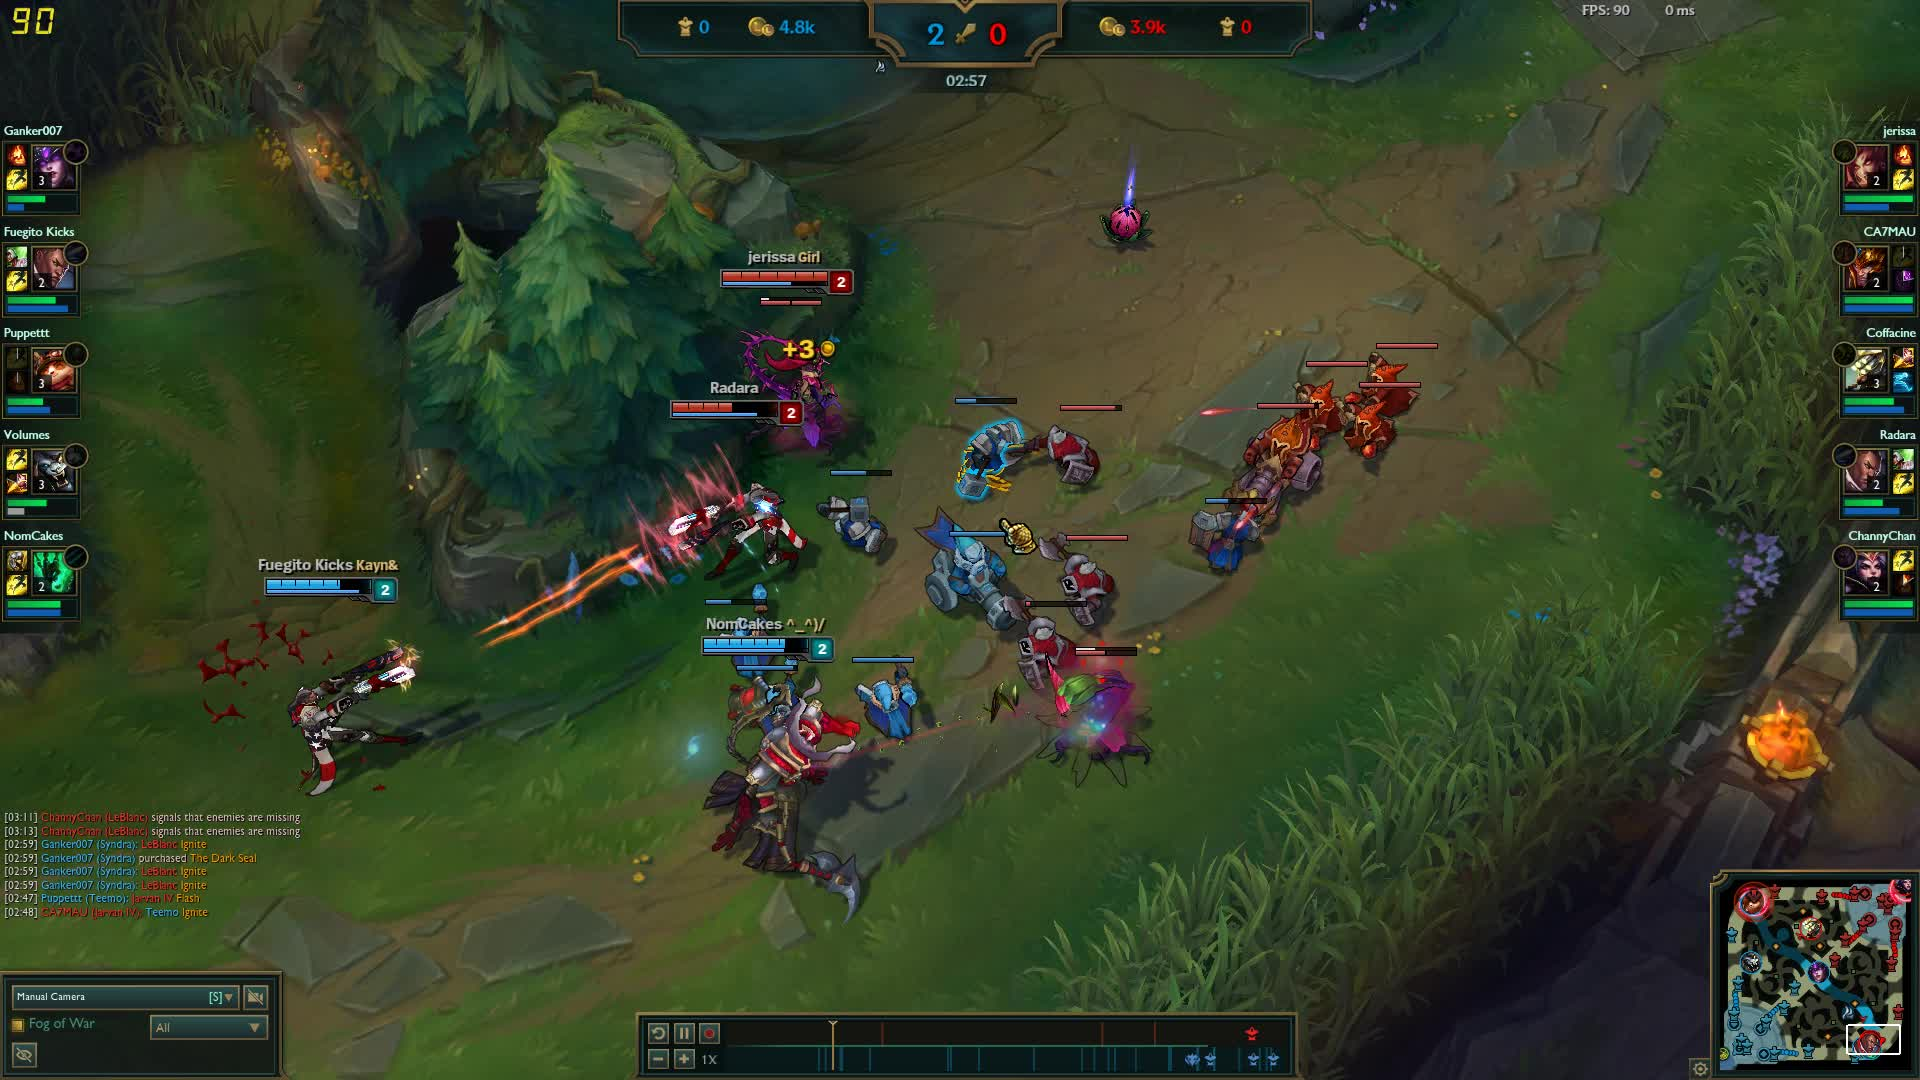 Bot Lane Gifs Search | Search & Share on Homdor